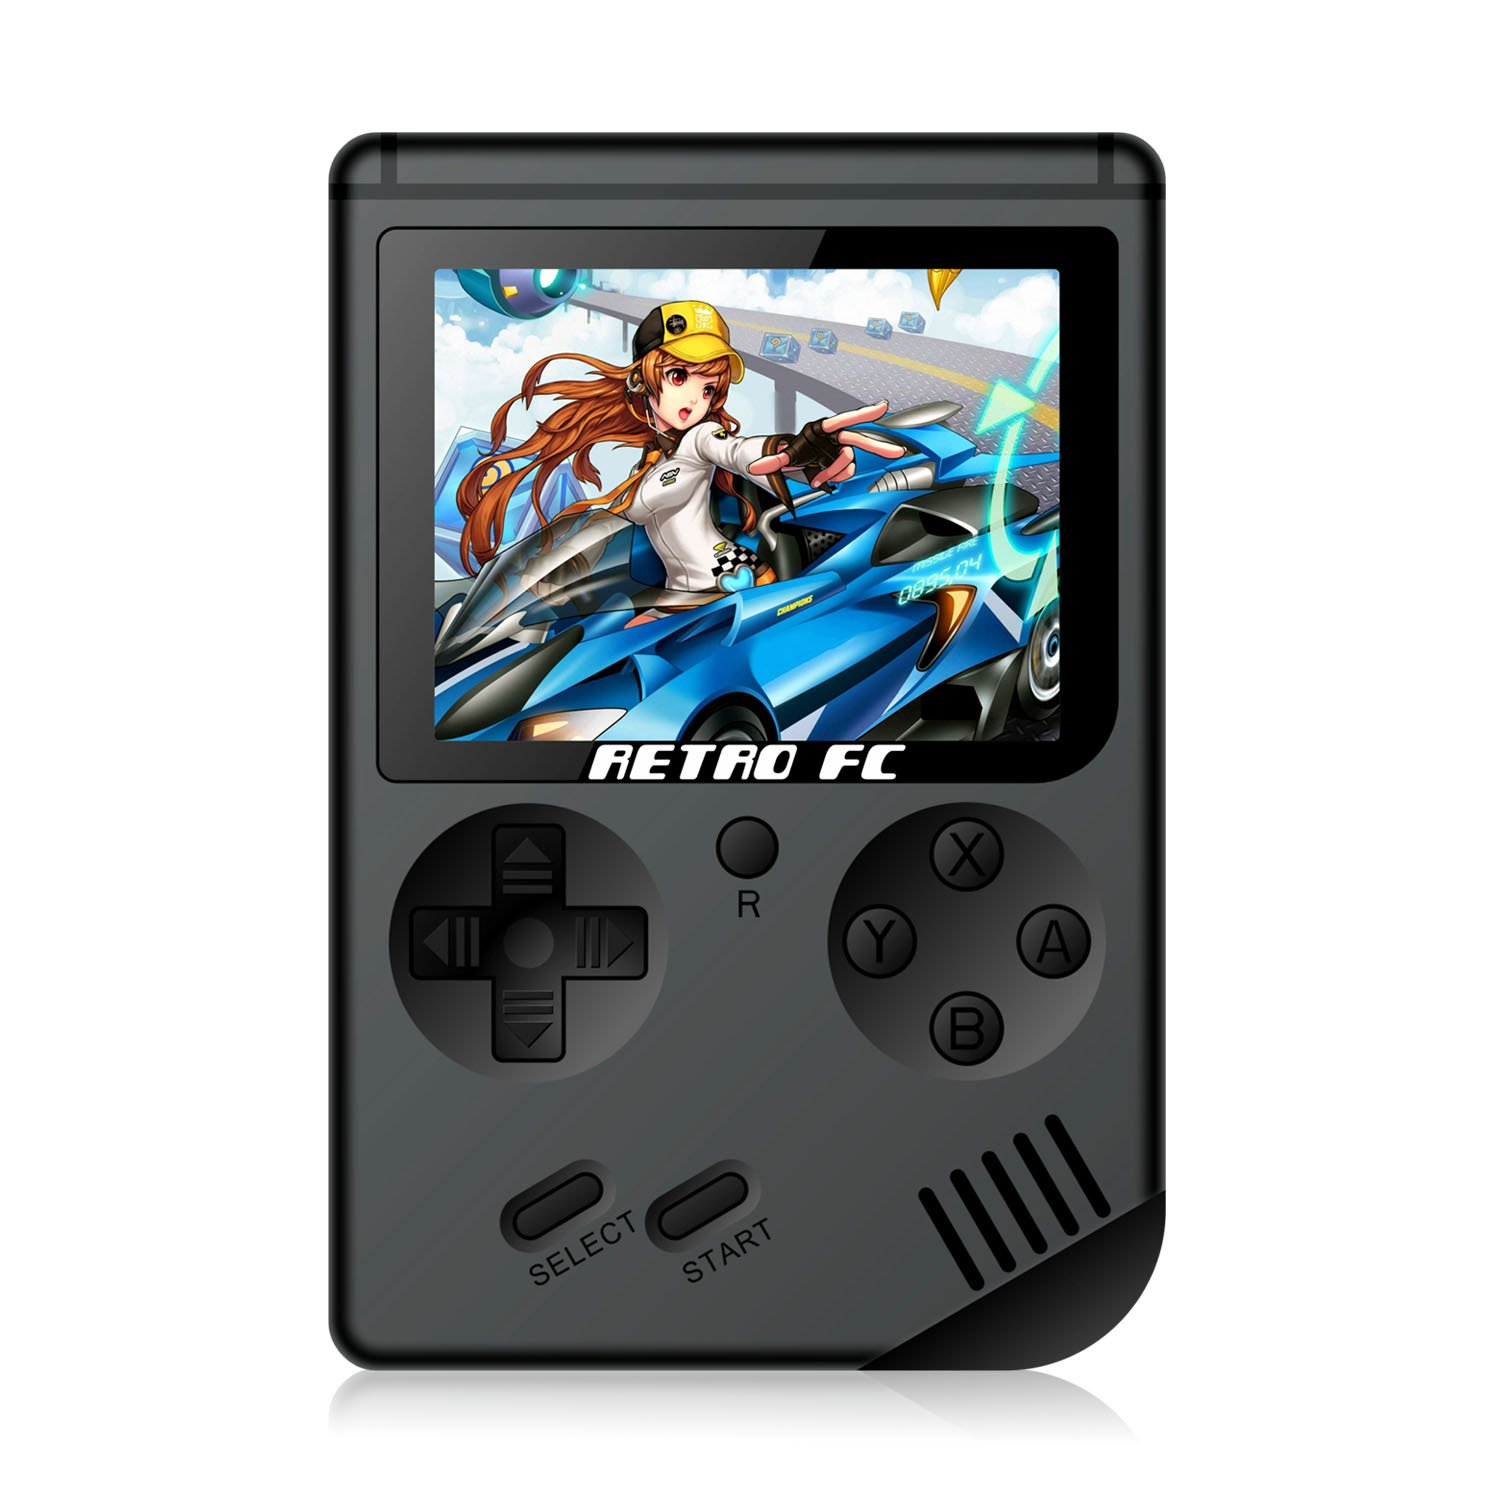 Anbernic Game Console Handheld Game Console 3 Inch Screen 168 Games Retro  FC TV Output Game Player Classic Game Console , Birthday Present for  Children ...